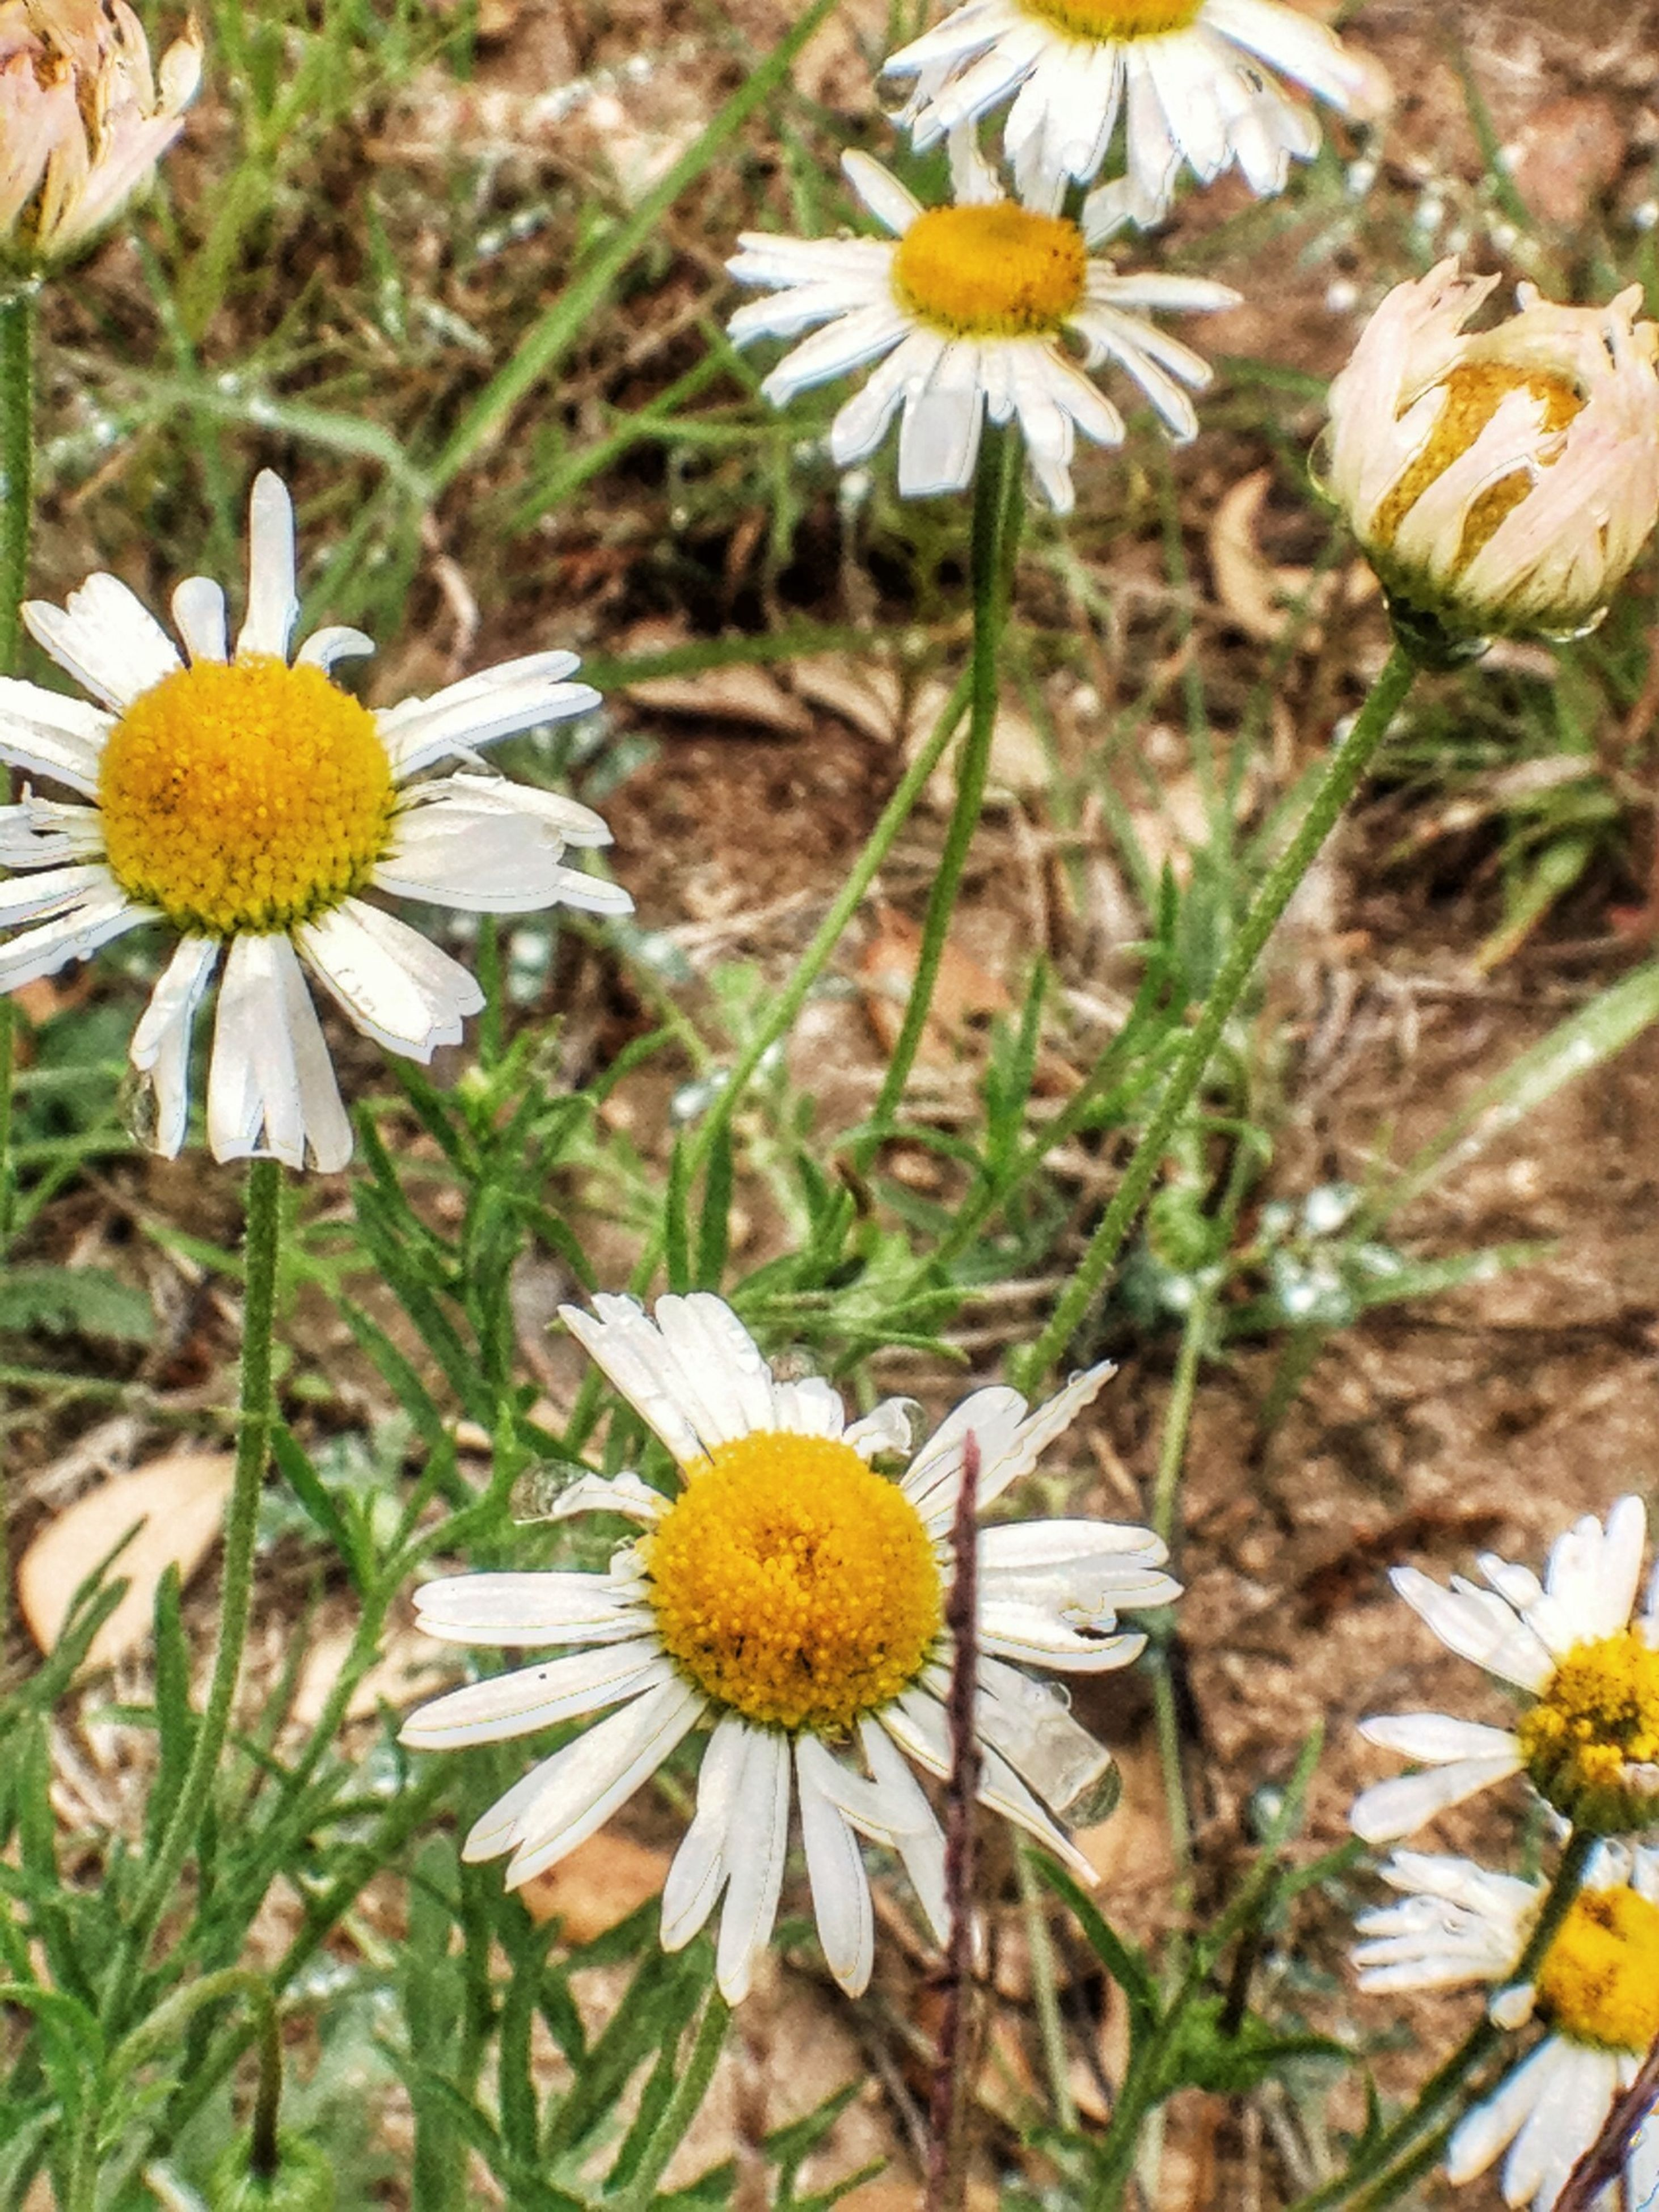 flower, freshness, petal, fragility, yellow, flower head, growth, daisy, pollen, beauty in nature, blooming, nature, close-up, plant, white color, focus on foreground, field, high angle view, in bloom, day